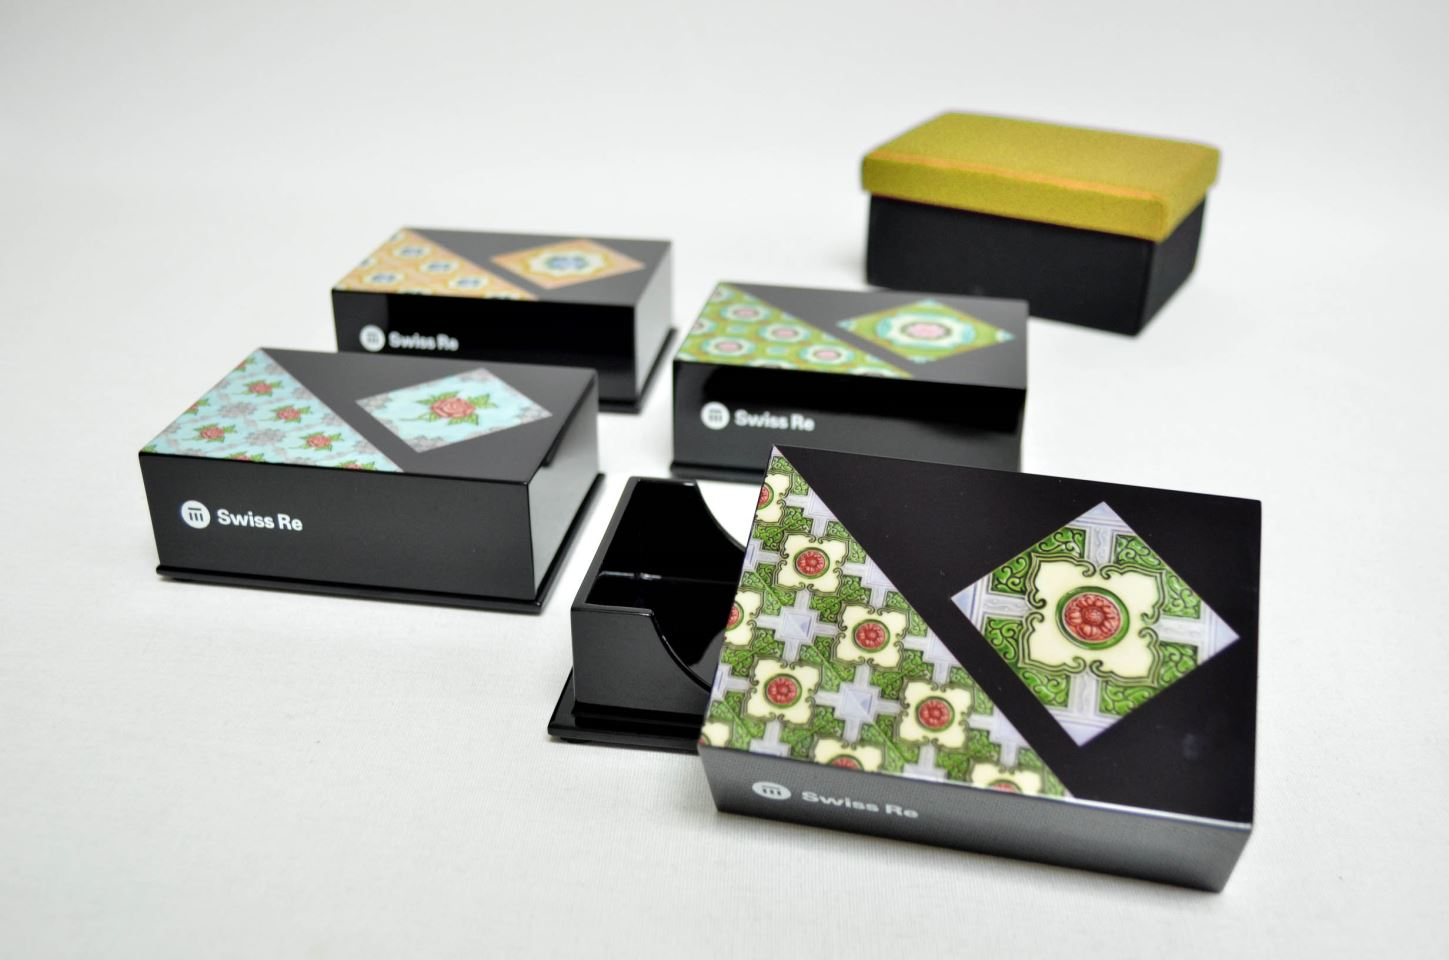 A Company Logo on Qua's Peranakan Business Card Box